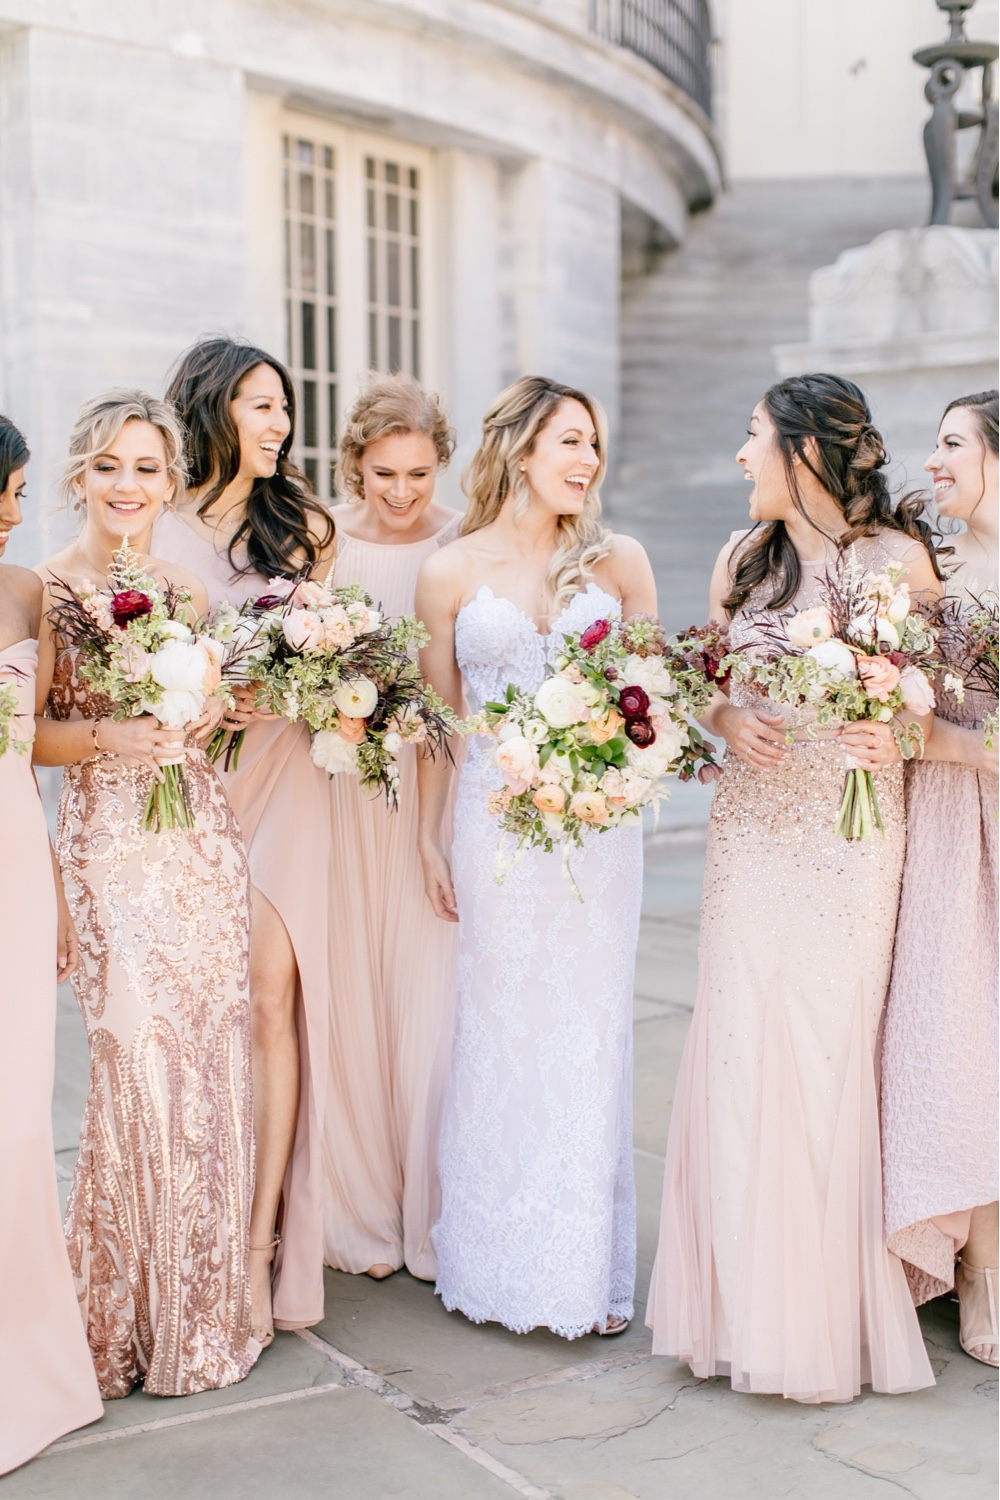 103 Bride And Bridesmaid In Pink Dresses Old Town Philadelphia Wedding